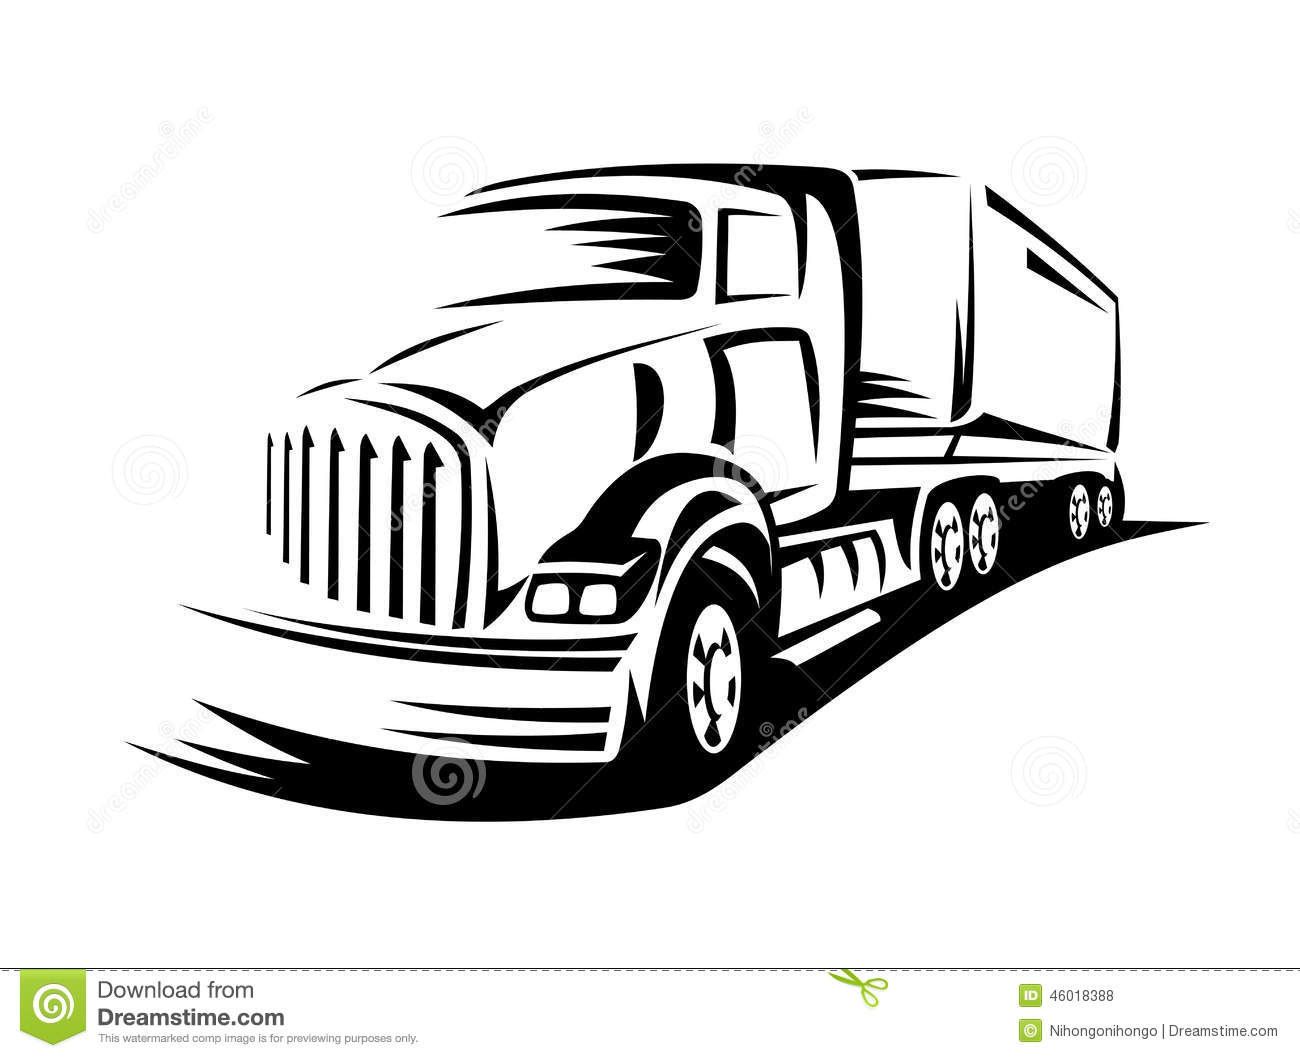 Moving truck stock vector. Image of isolated, motion